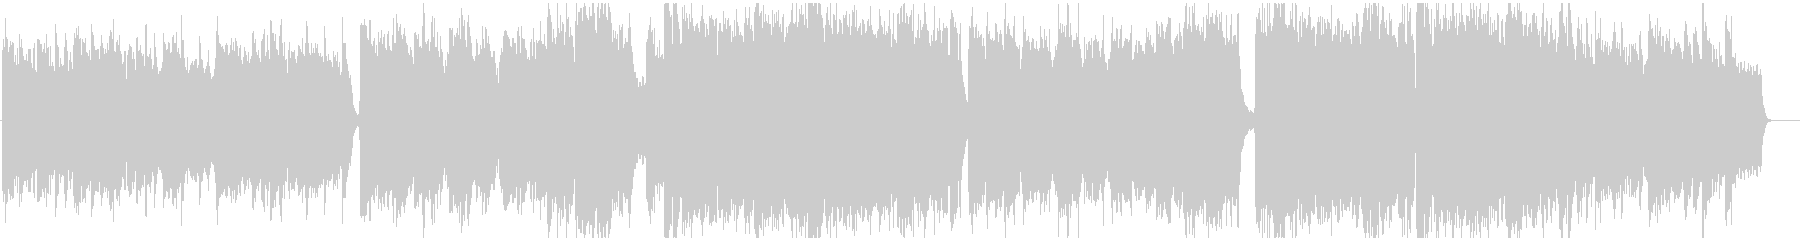 Dramatic, story-like BGM's unreproduced waveform